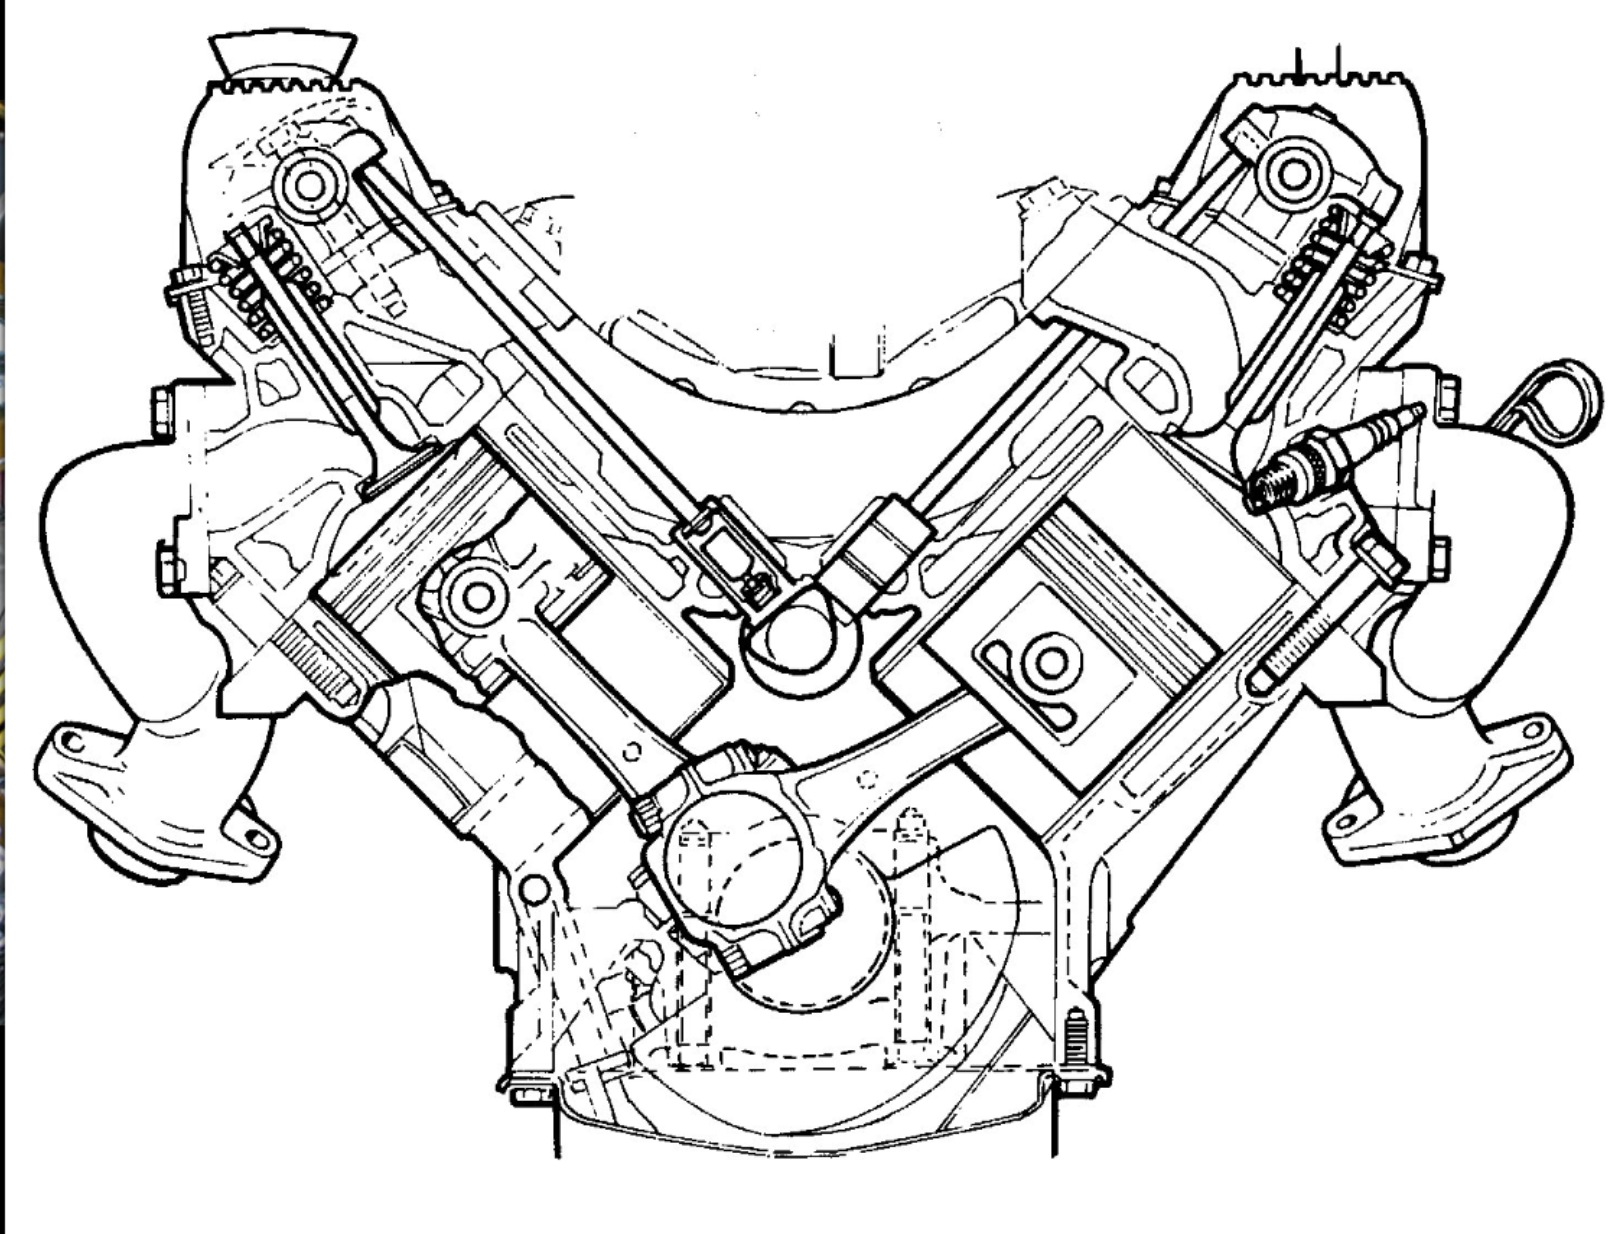 V8 Engine With Blower Side View